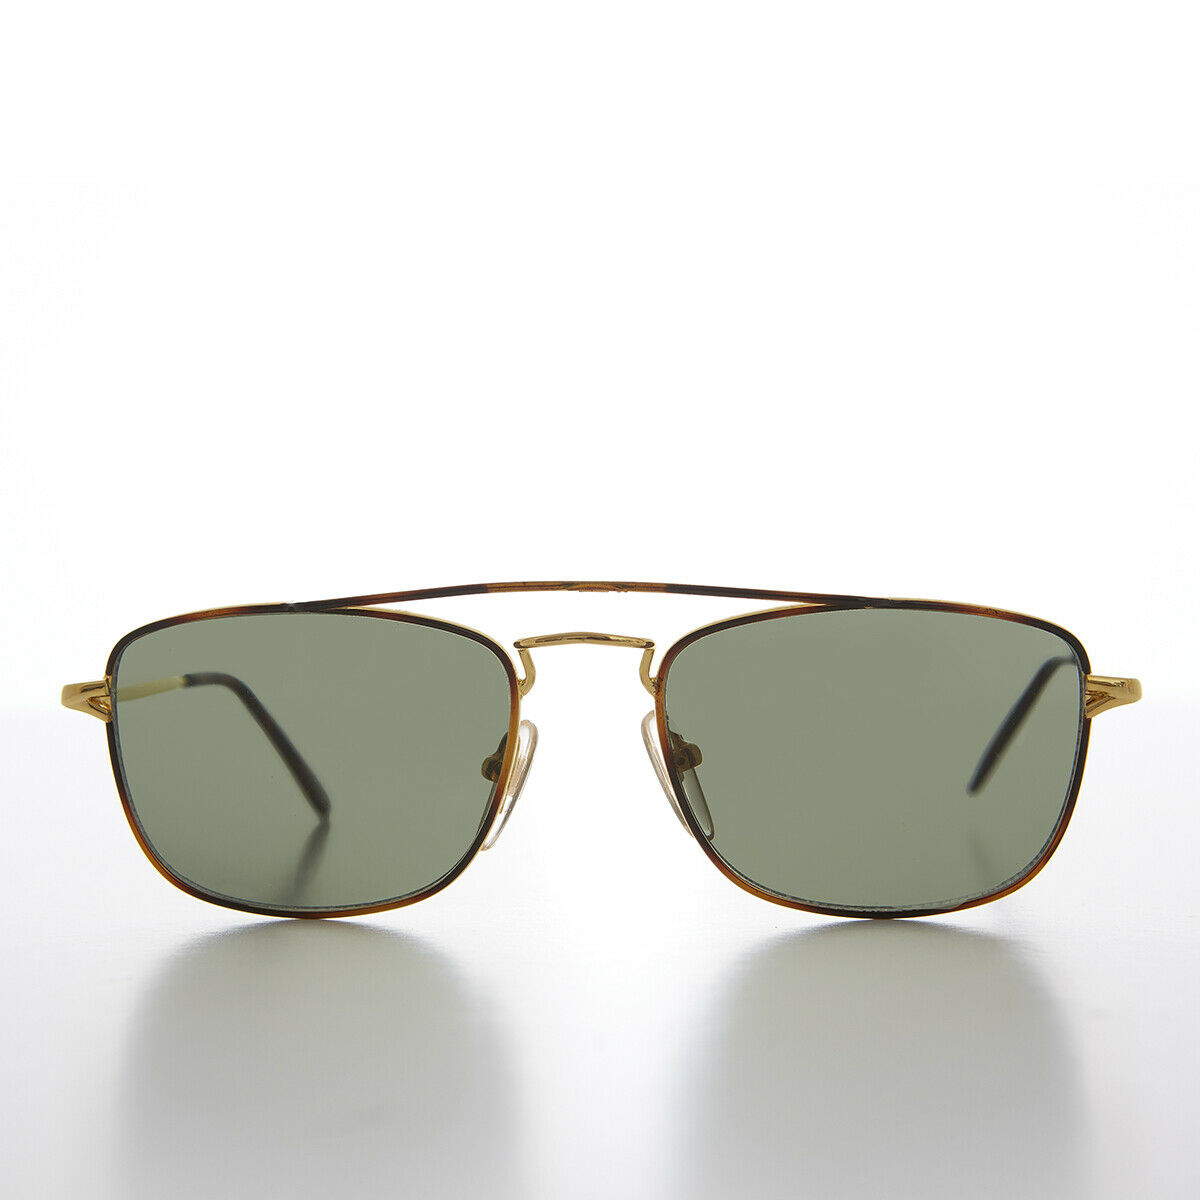 Gold Square Vintage Aviator Sunglass with Tortoise Accent and Green Lens - Jake